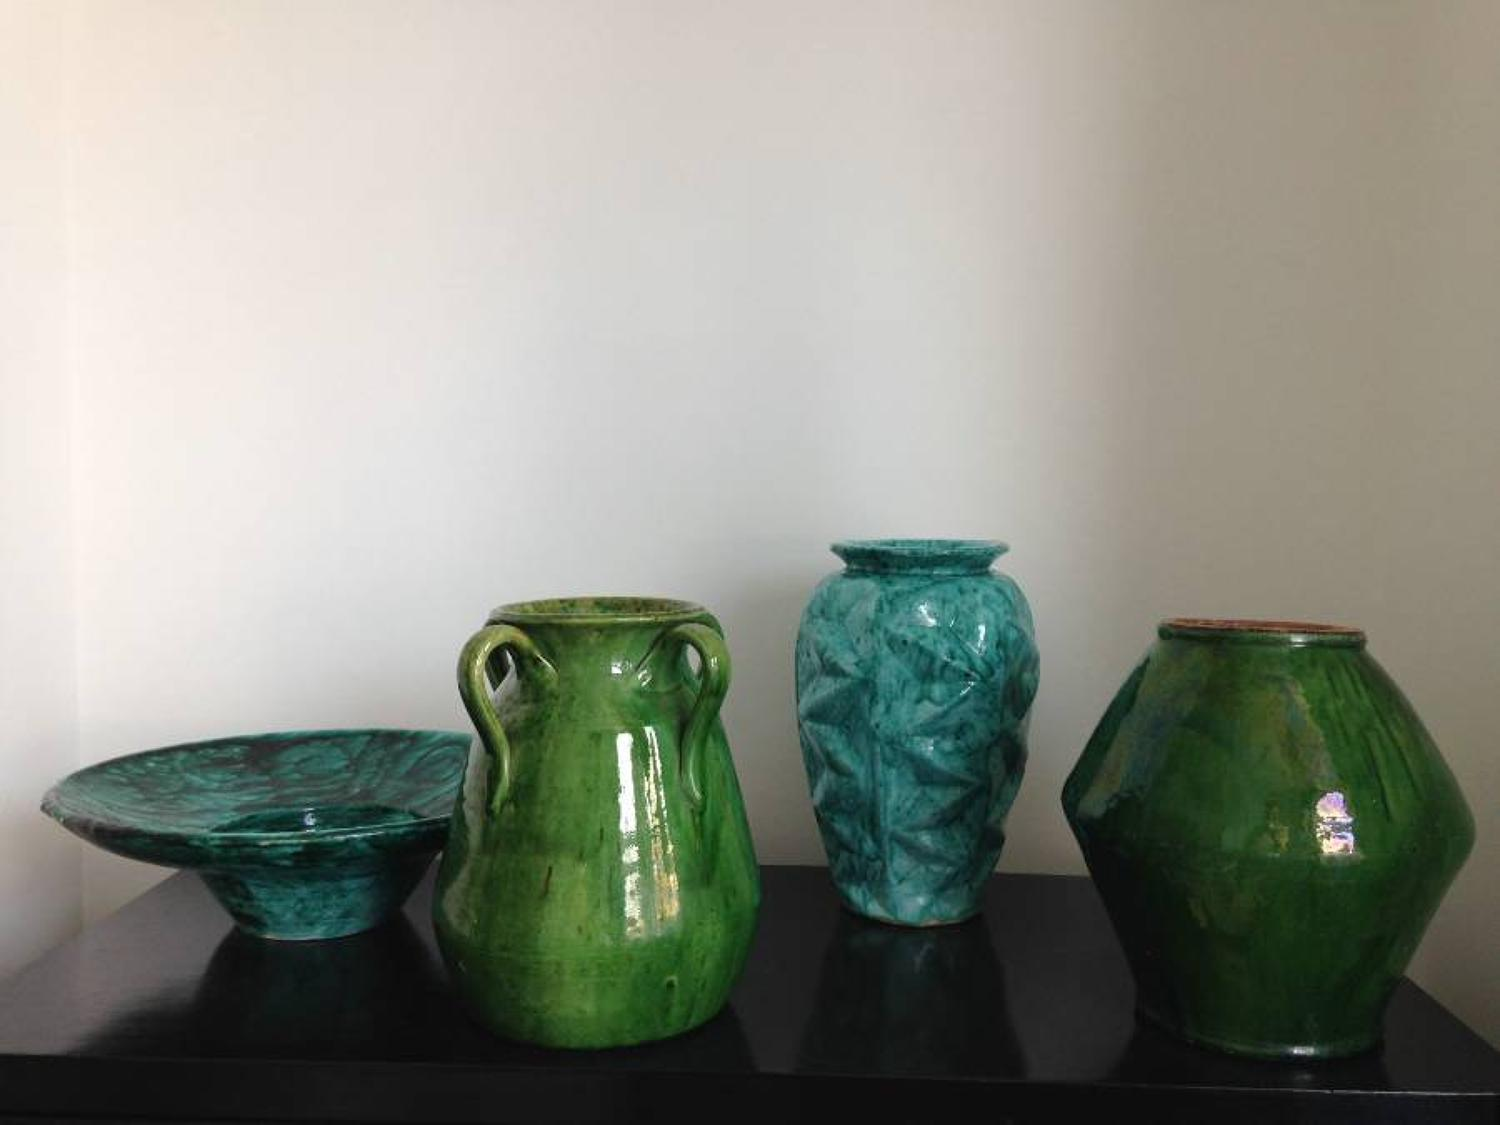 A selection of ceramic vases